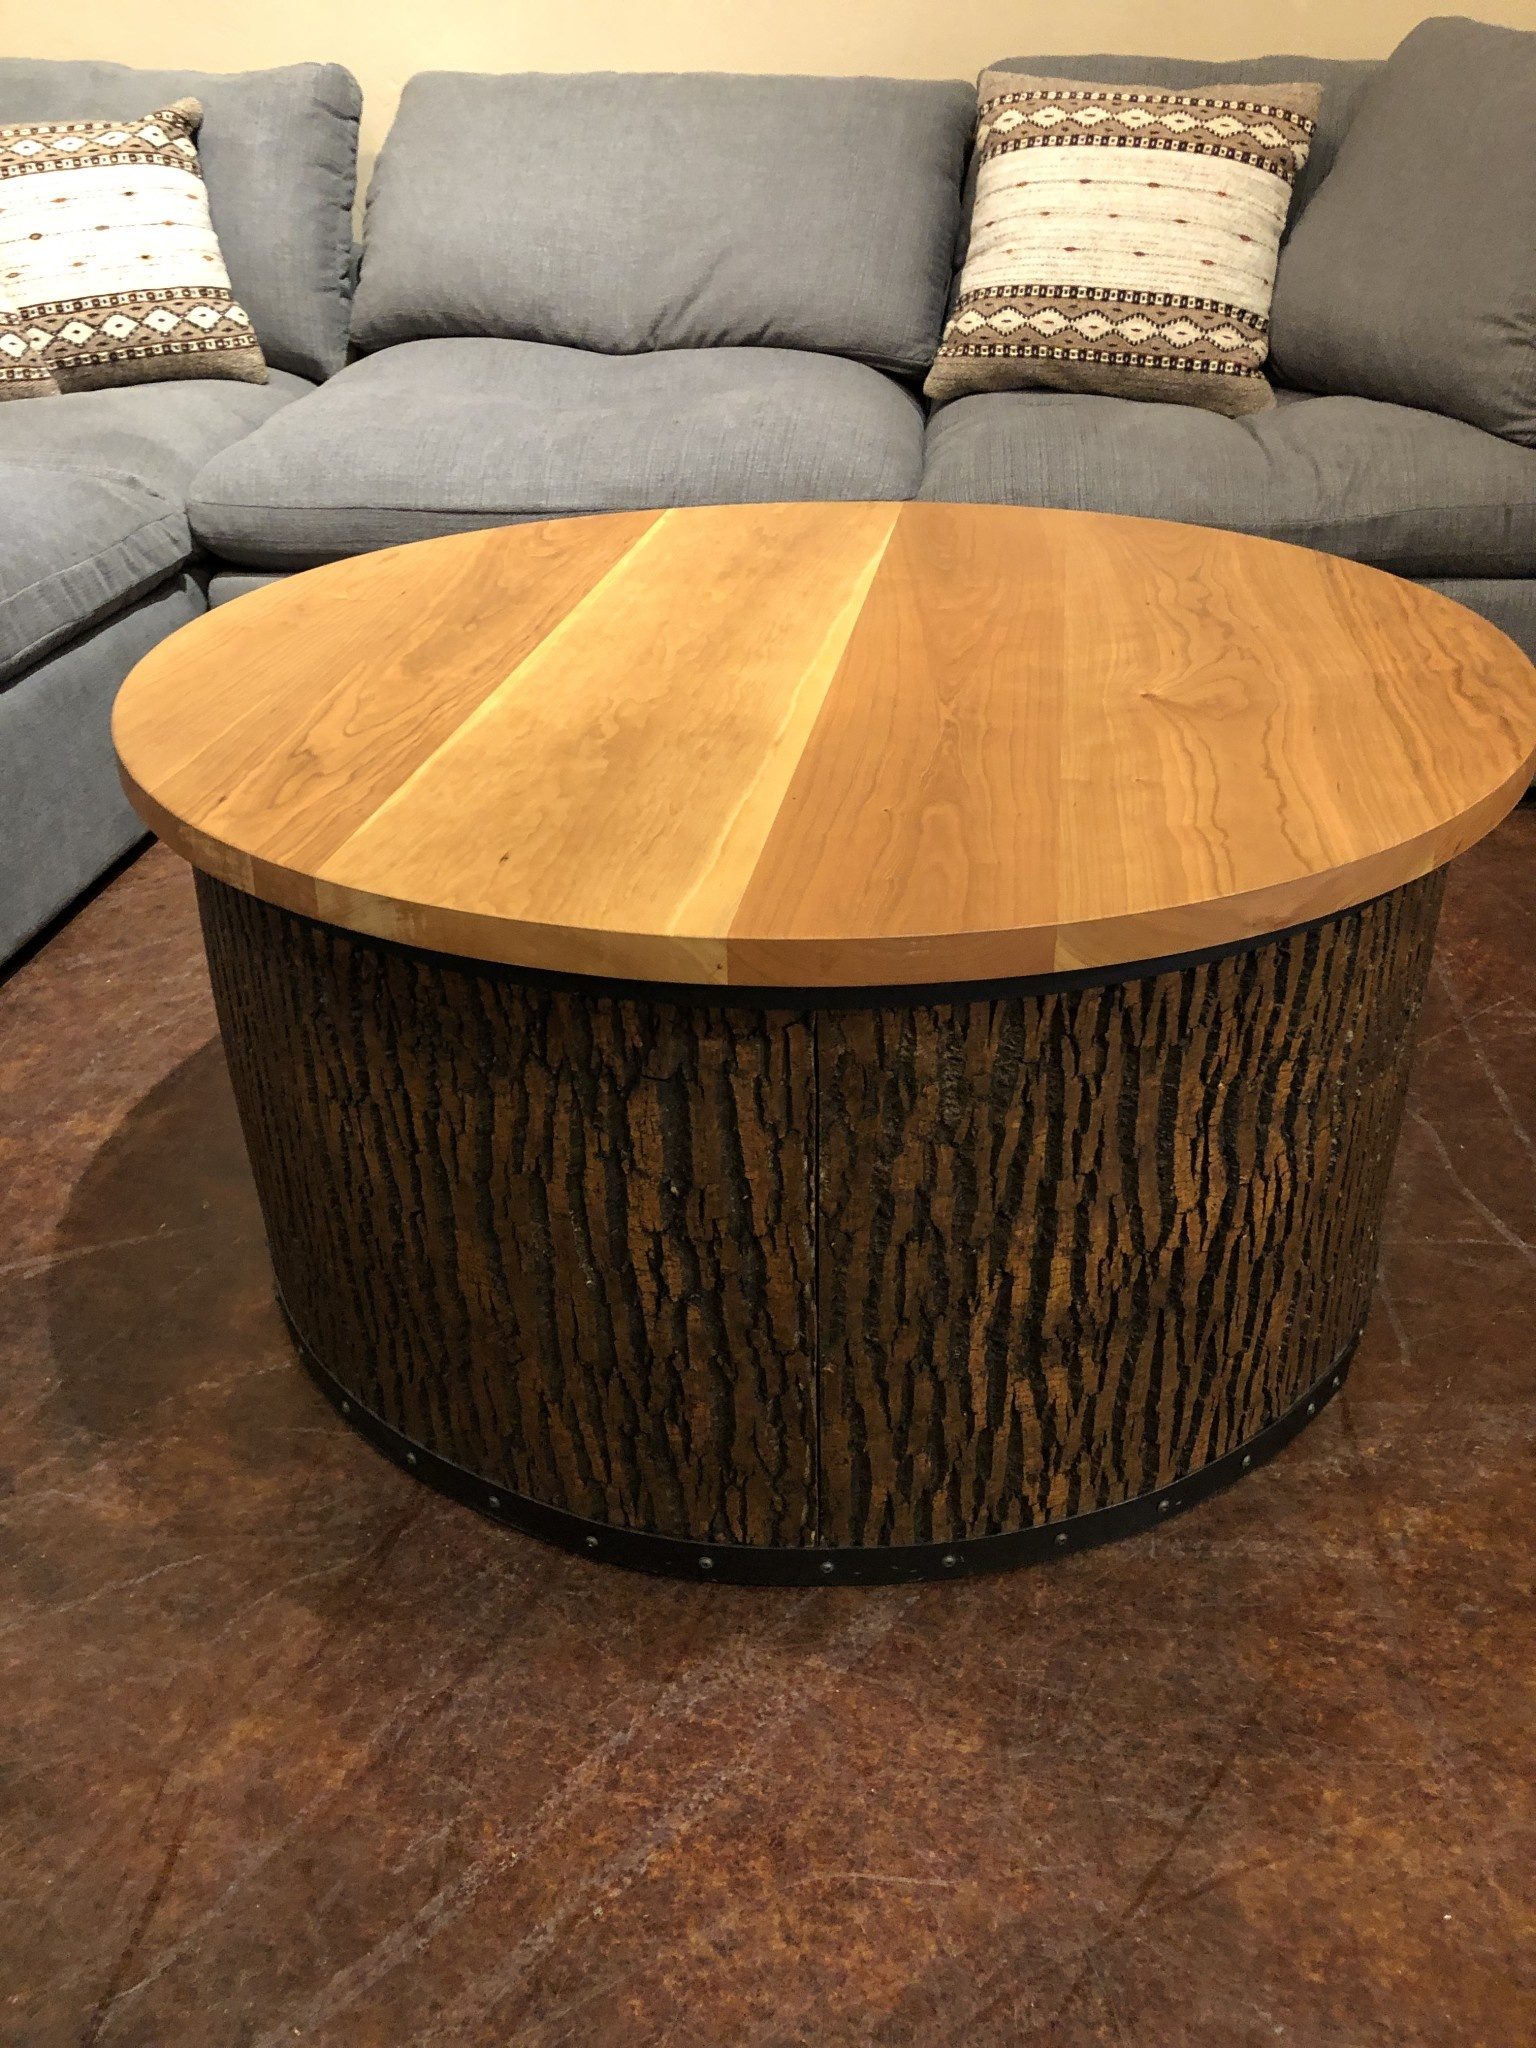 Green Gables Mossy Oak Carver Point Round Coffee Table w/Natural Bark-Cherry Top